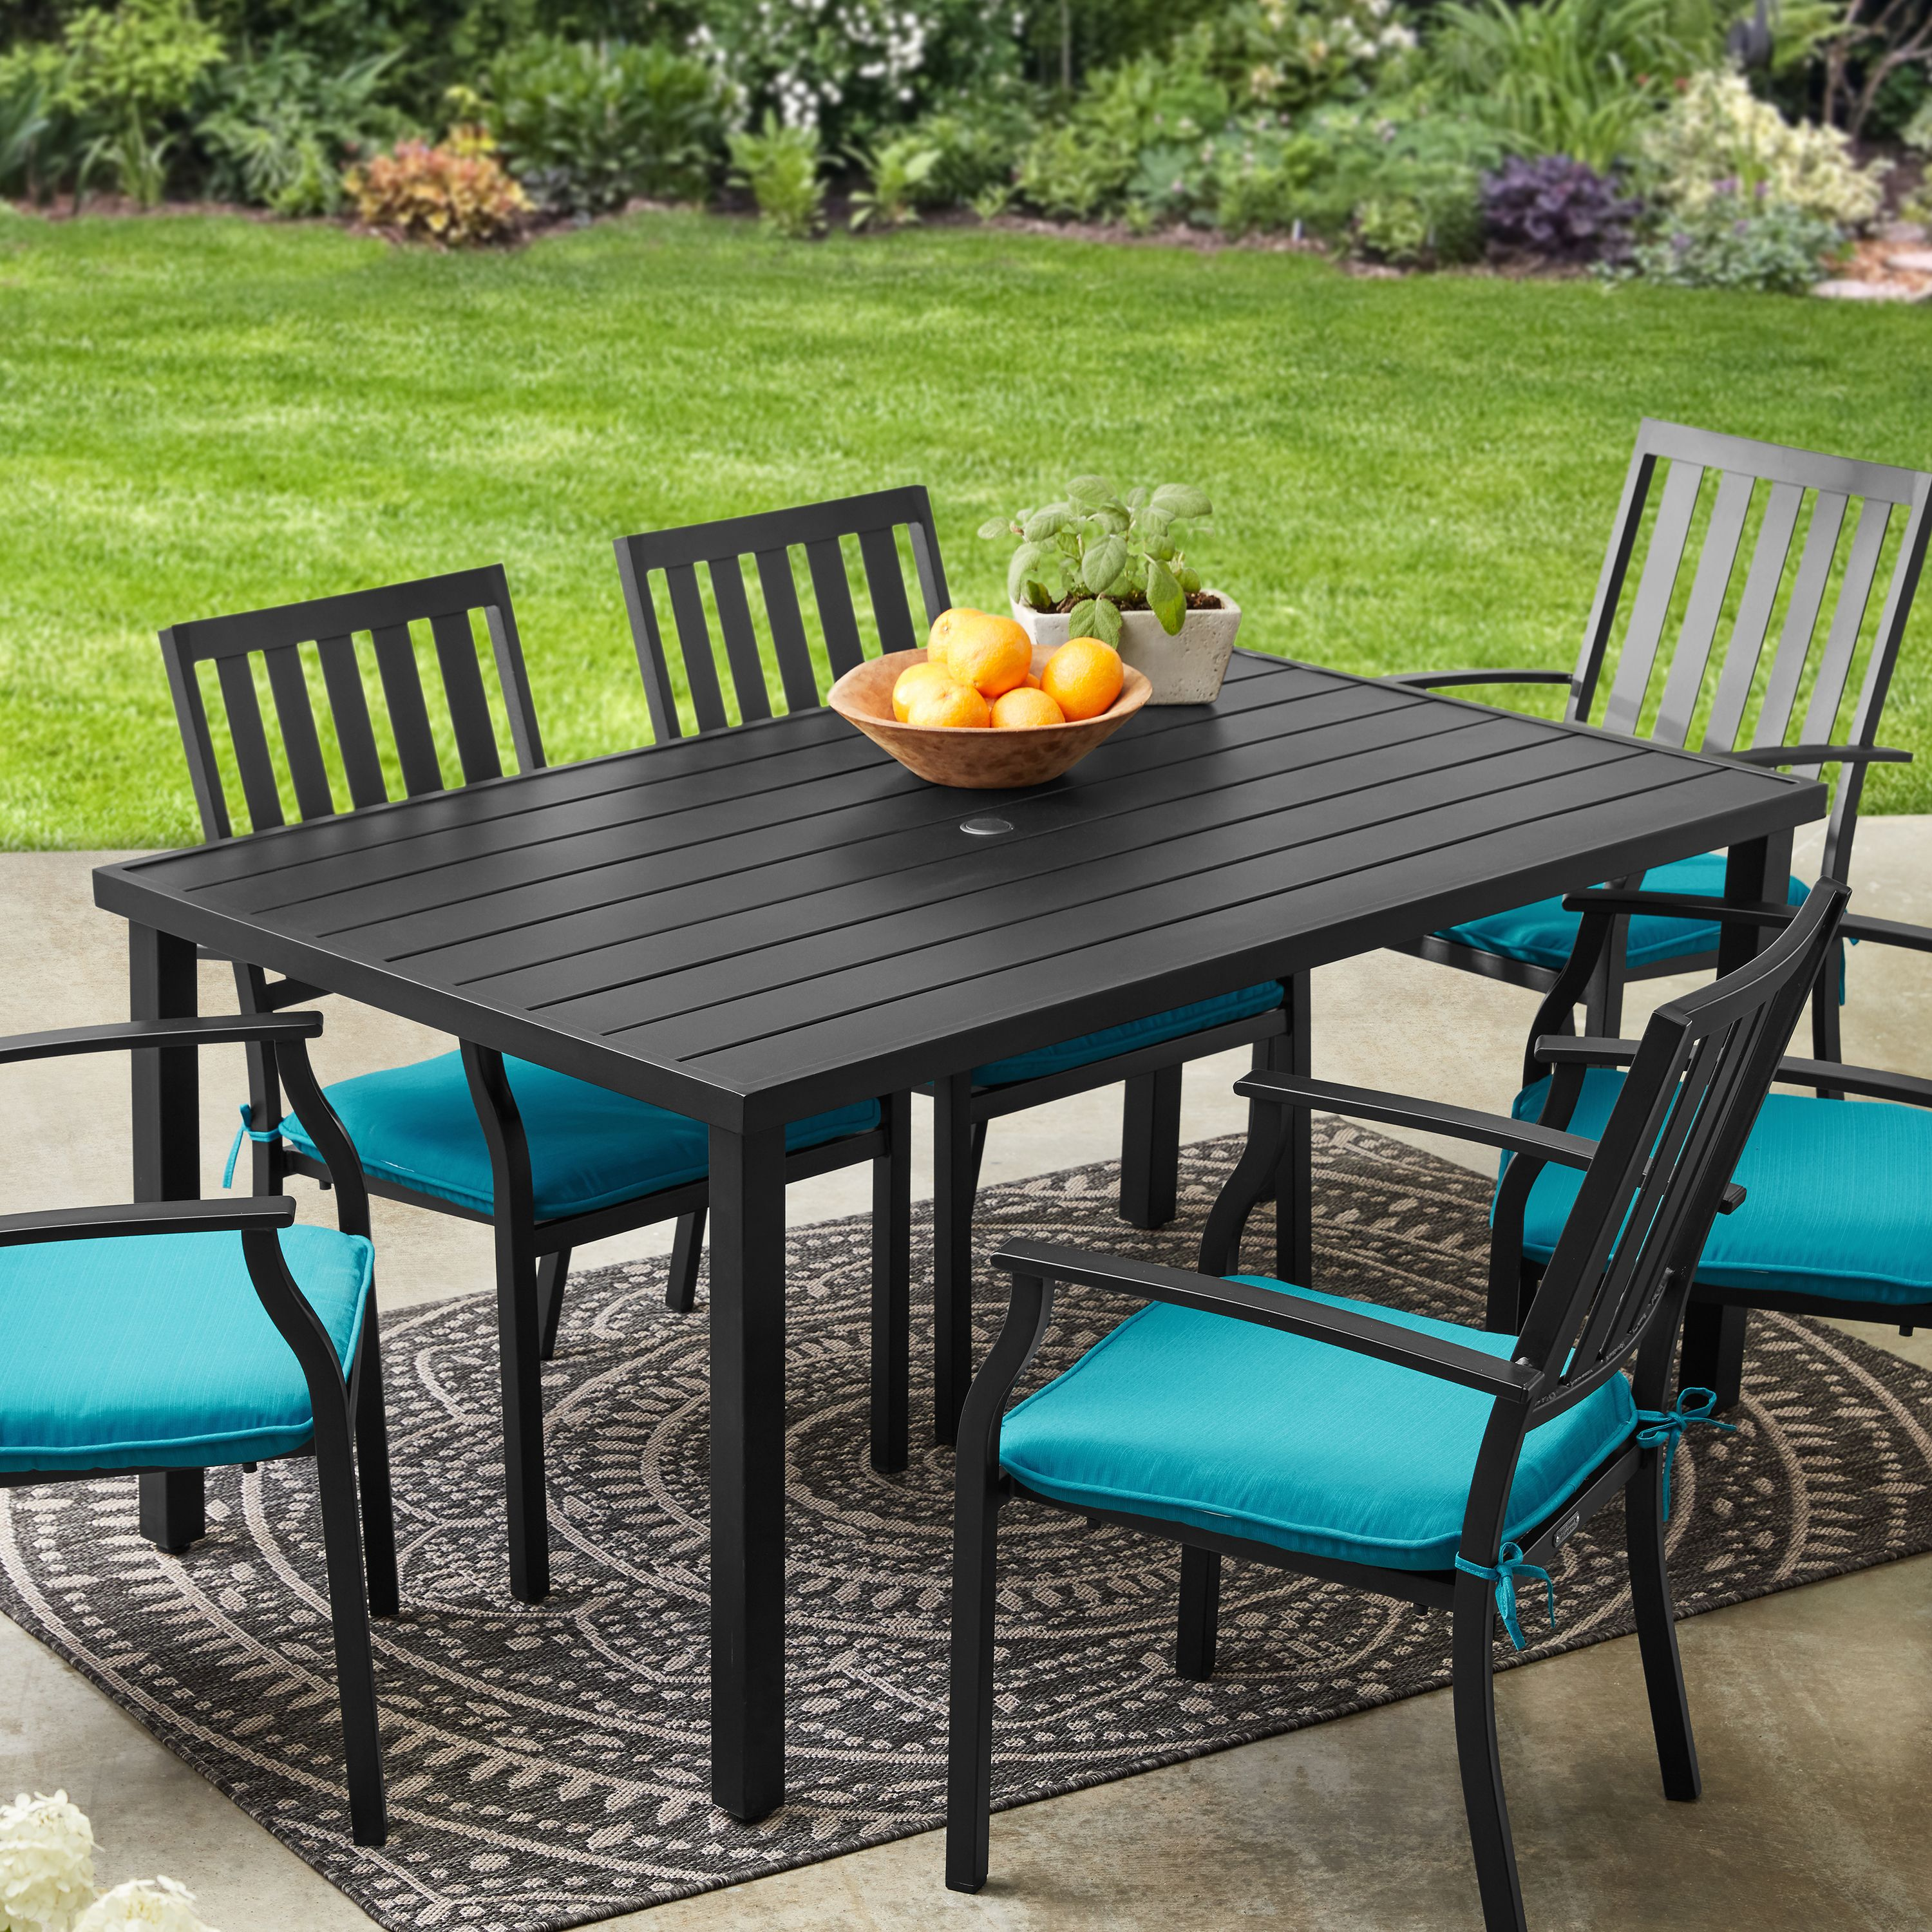 Patio Garden In 2020 Patio Dining Table Better Homes And